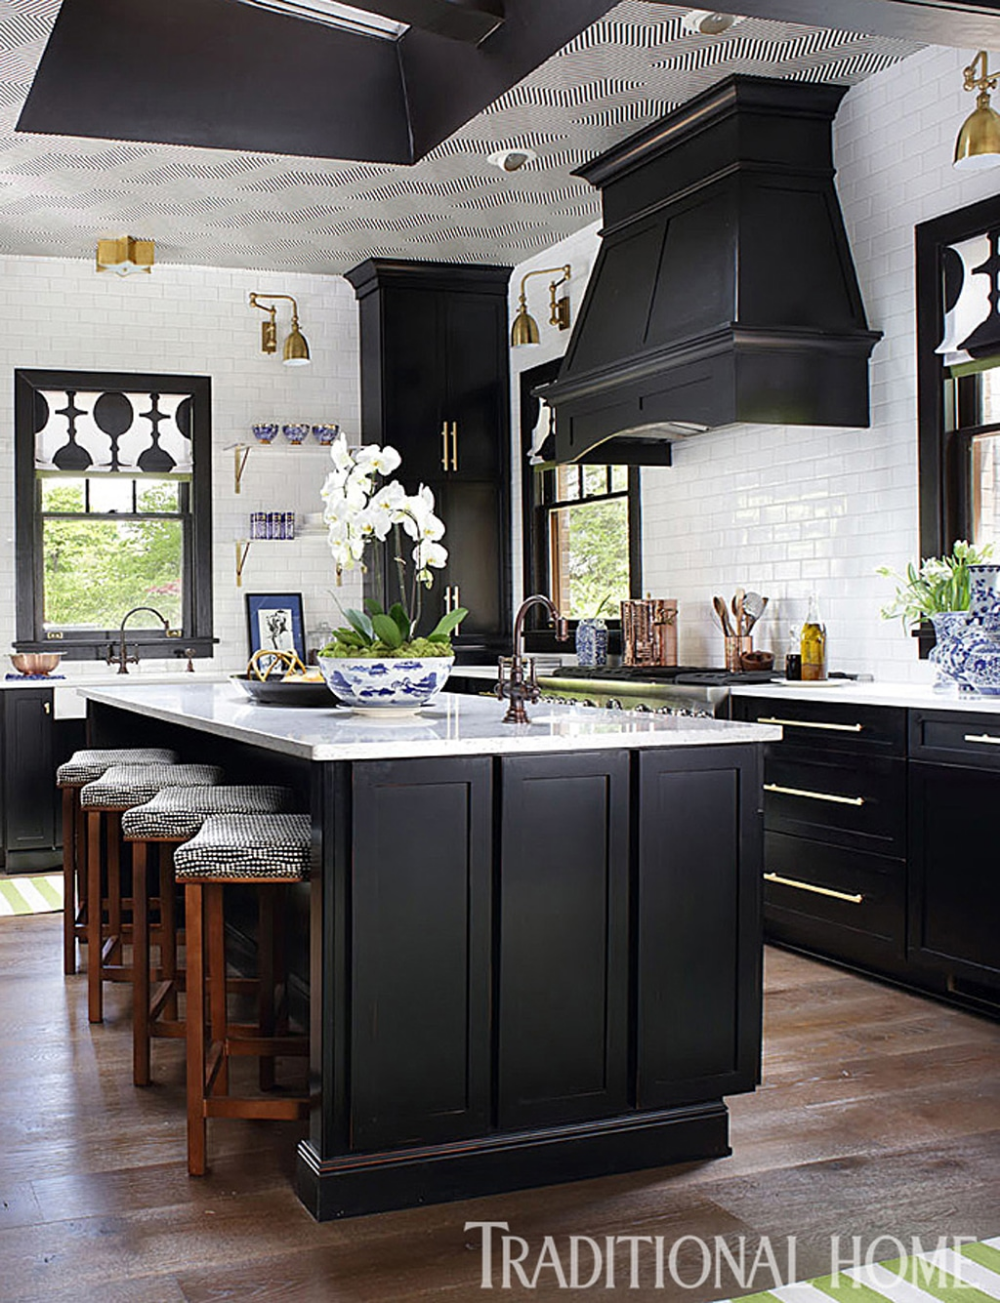 Black Kitchen Cabinets From Traditional Home Art Deco Kitchen Traditional Kitchen Design Art Deco Kitchen Design